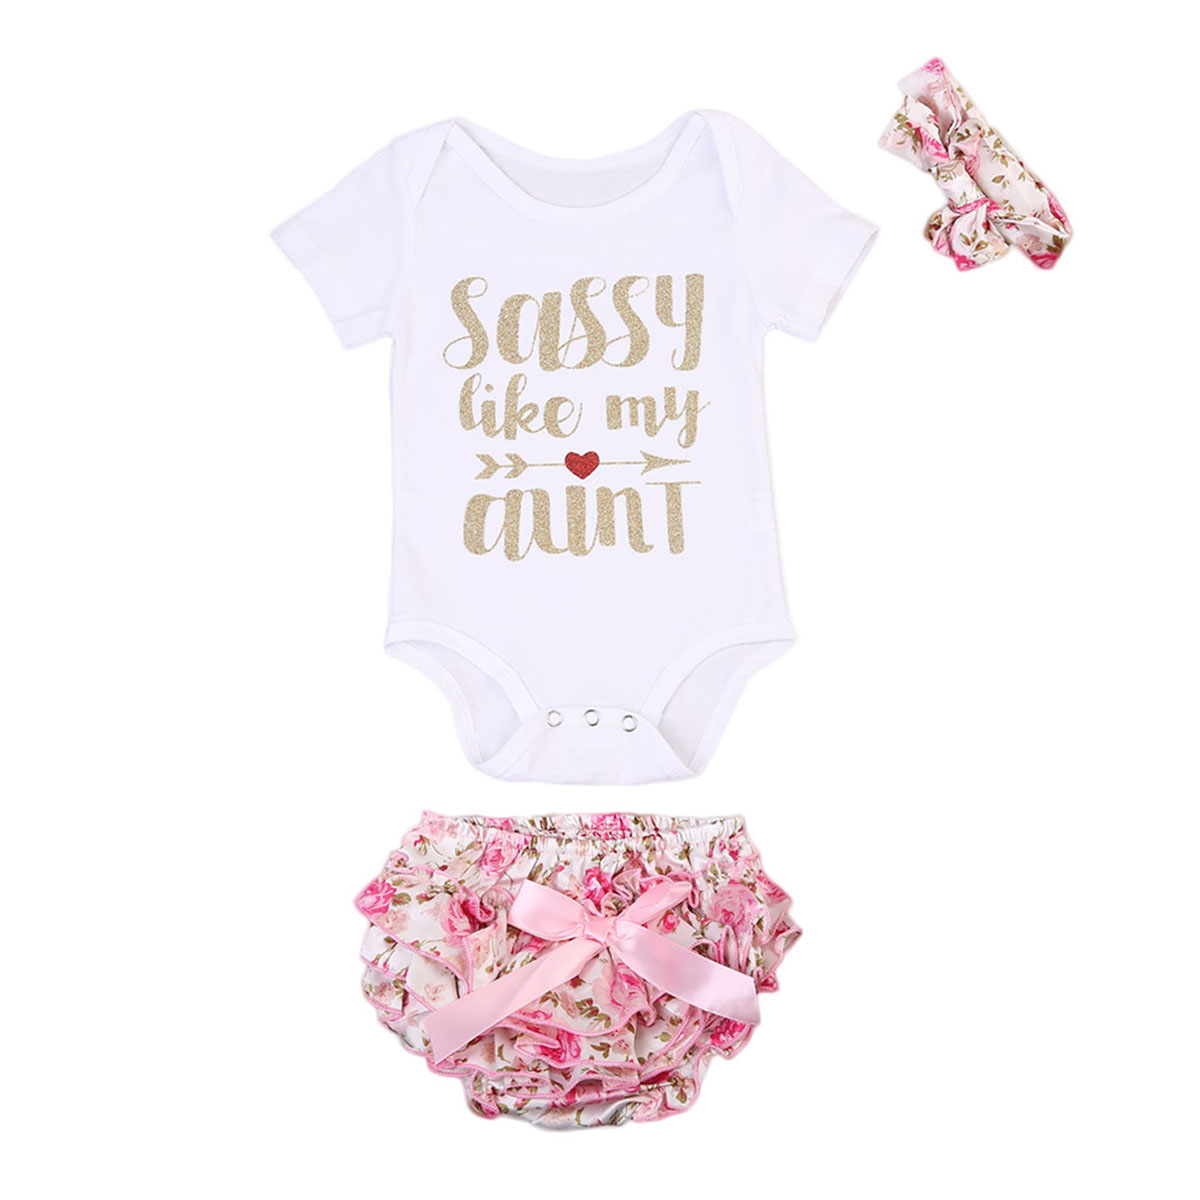 3PCS Baby Girls Letters Bodysuit Ruffle Shorts Clothing Set Outfit Clothes Bebes Headband Flower Short Pants Fille Outfits Sets